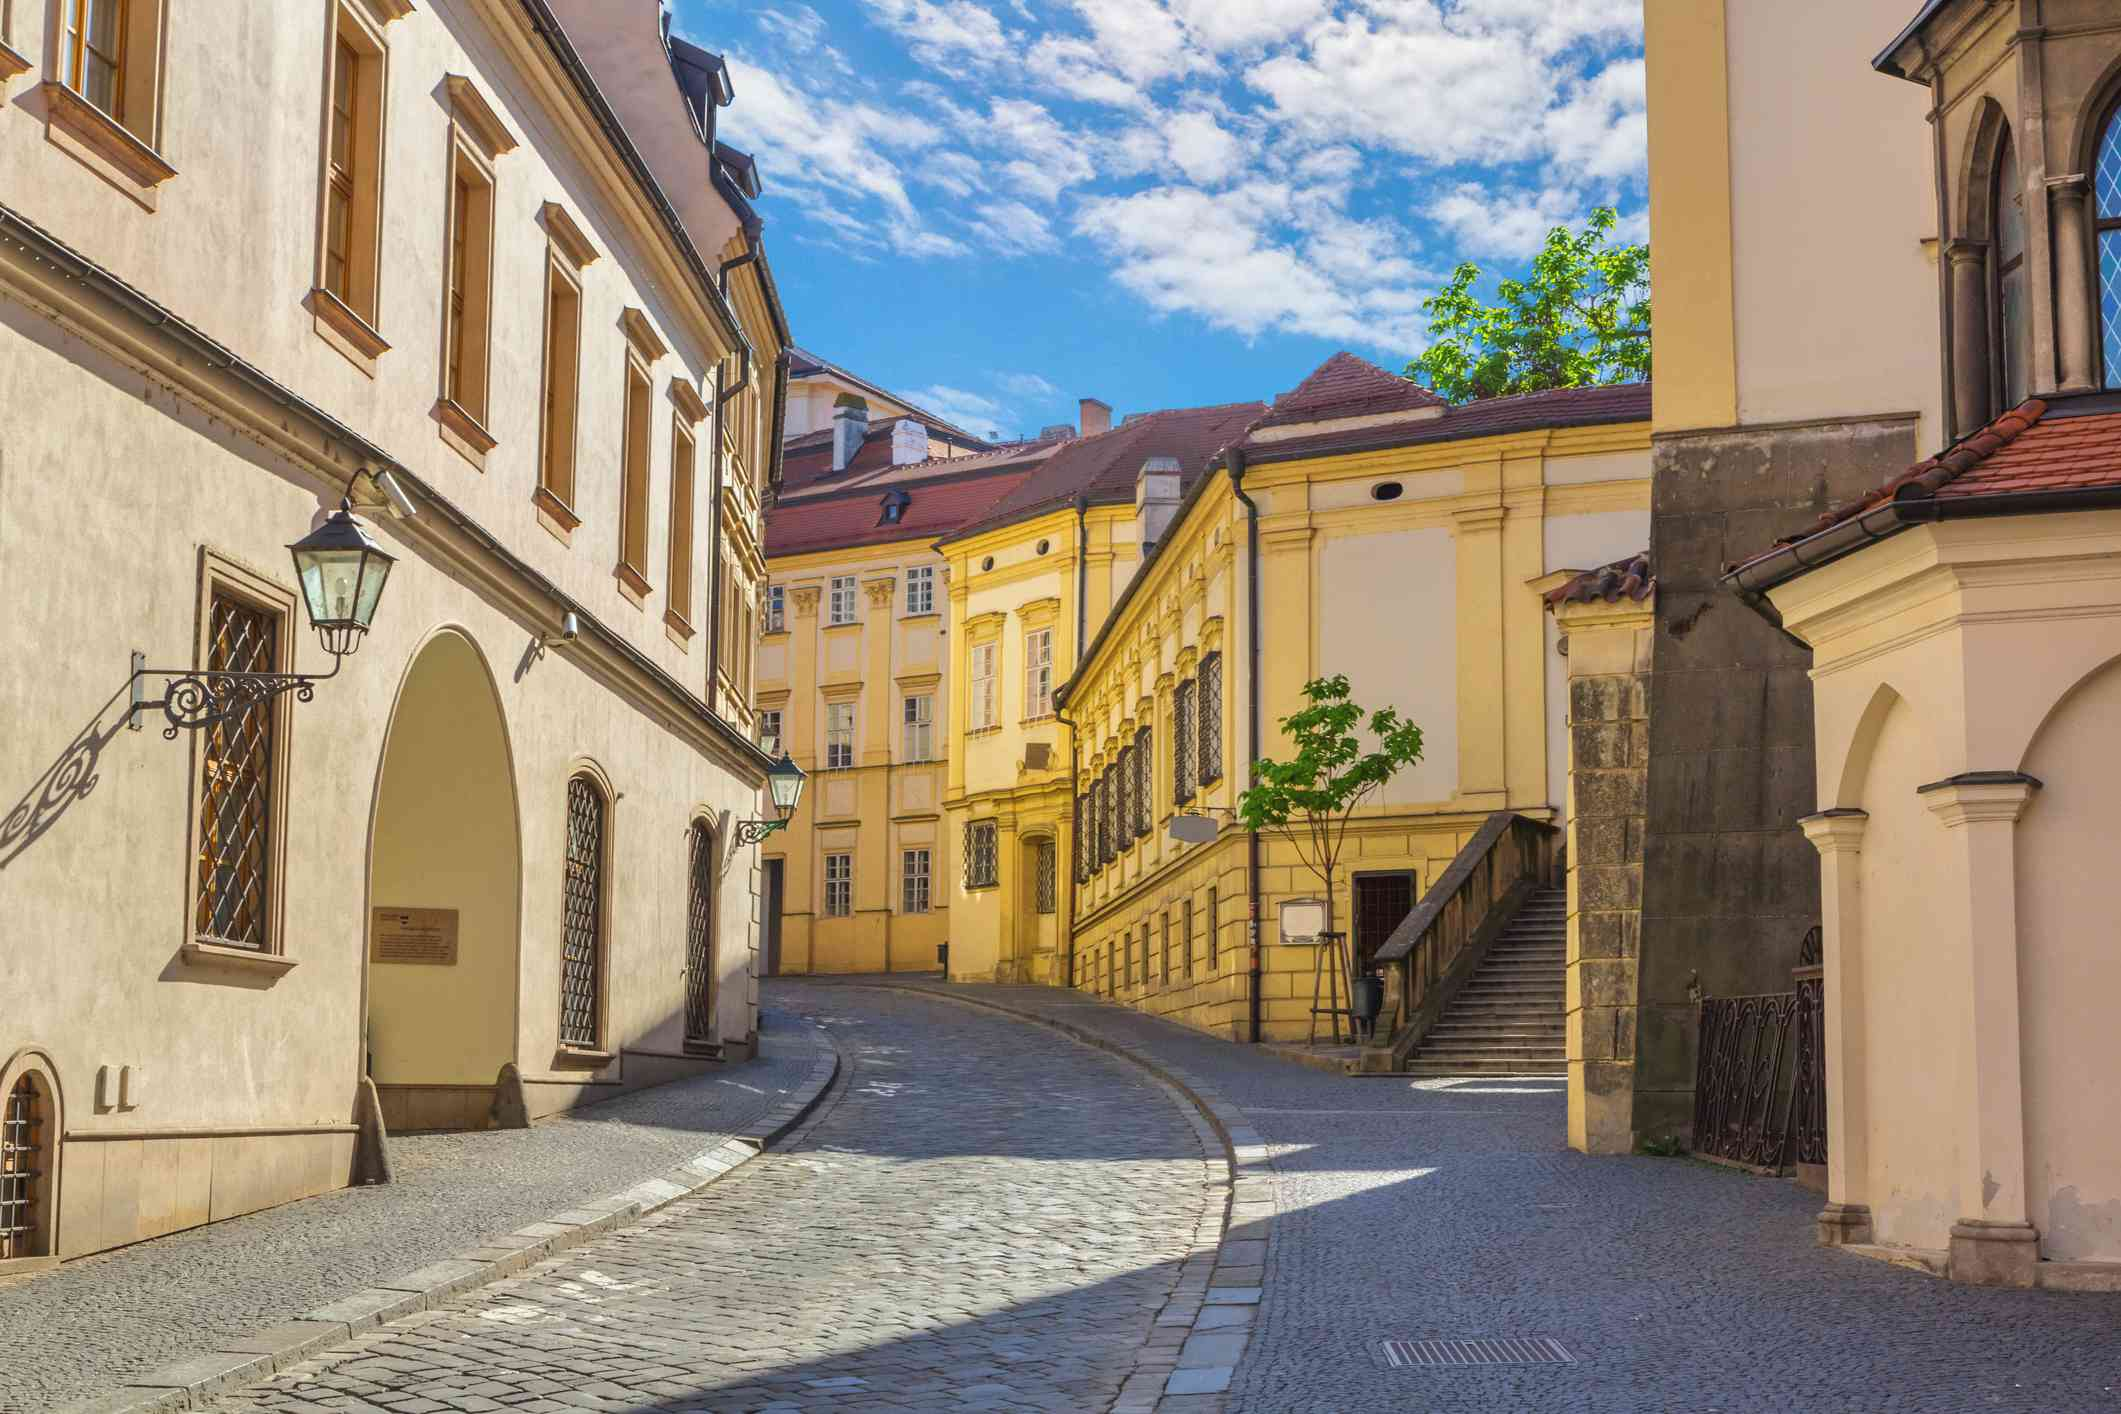 The old town in Brno, Czech Republic